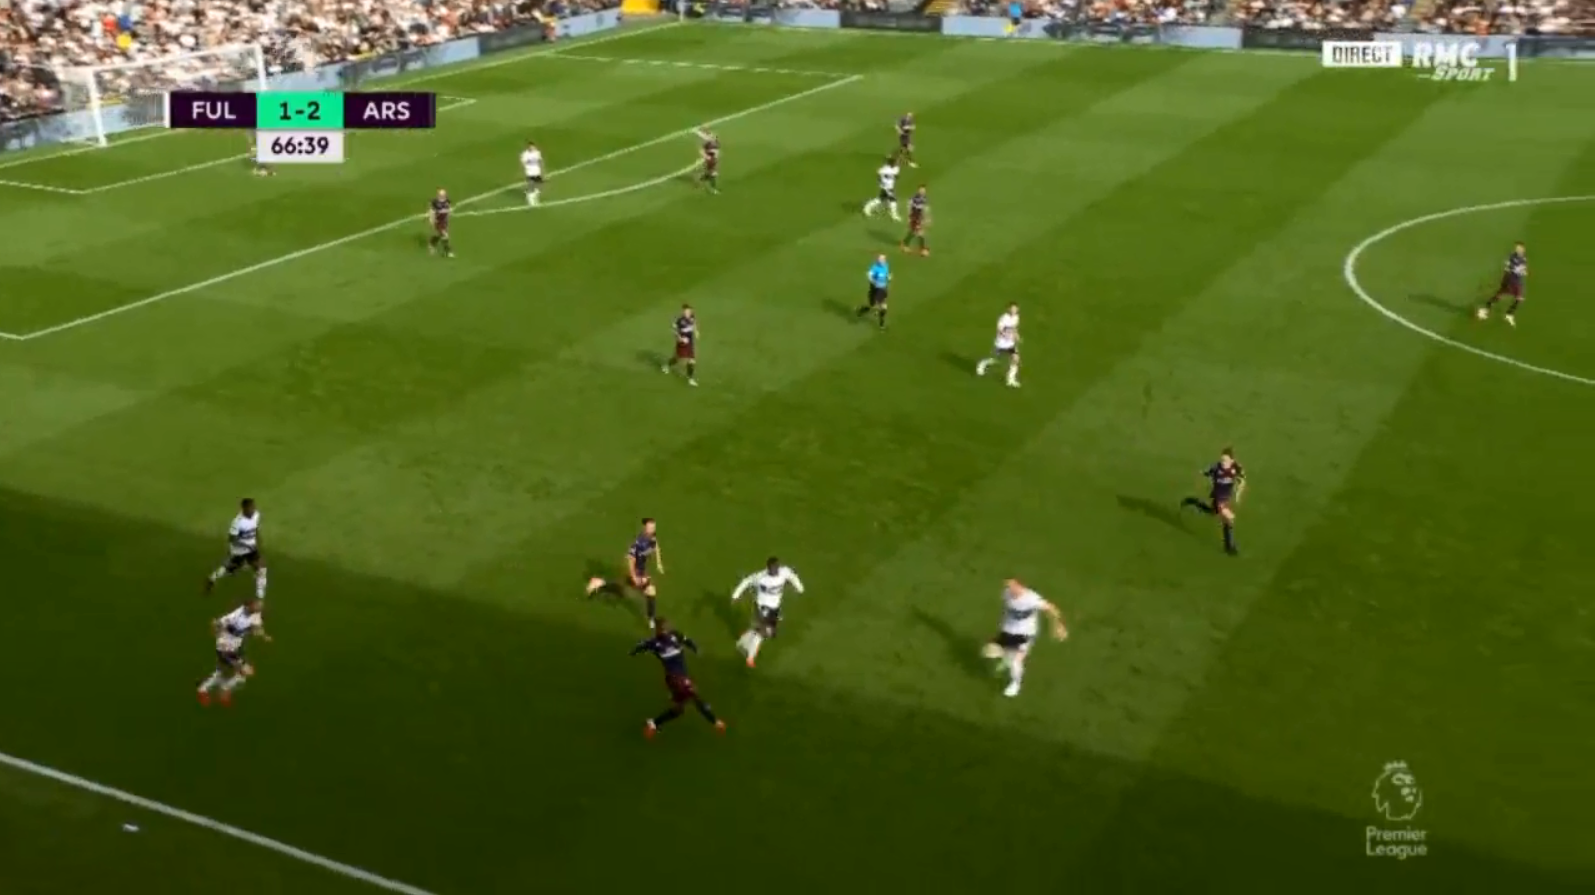 The Welshman moved it to Alexandre Lacazette who knocked it forward to the overlapping full-back